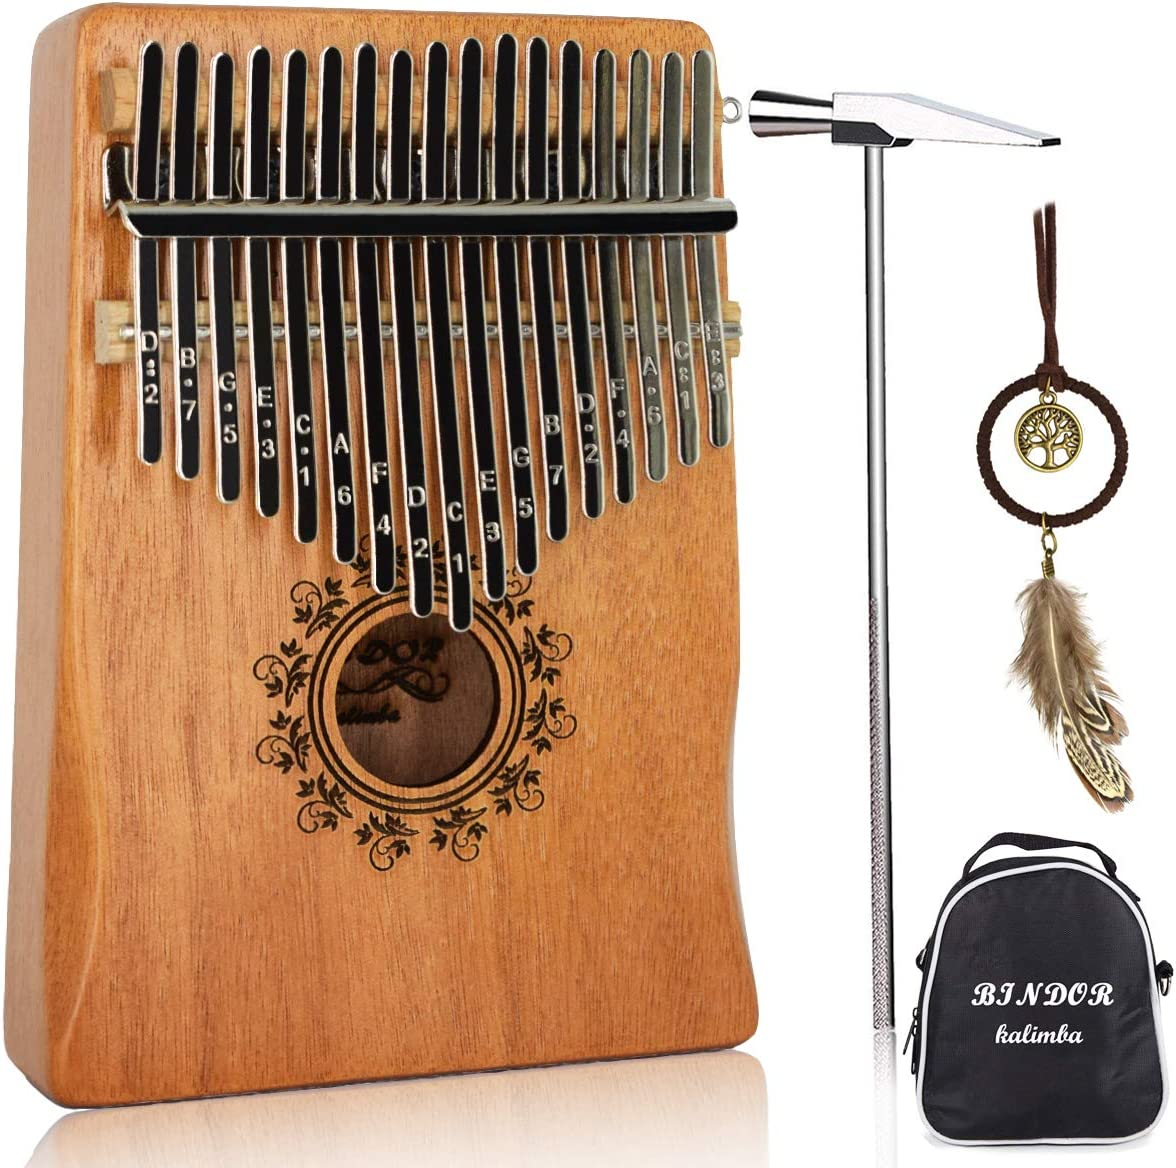 17 Key Kalimba Thumb Piano, Bindor Finger Piano Mbira Kalimba Solid Mahogany Body Portable Easy-to-learn Musical Instrument with Tuning Hammer